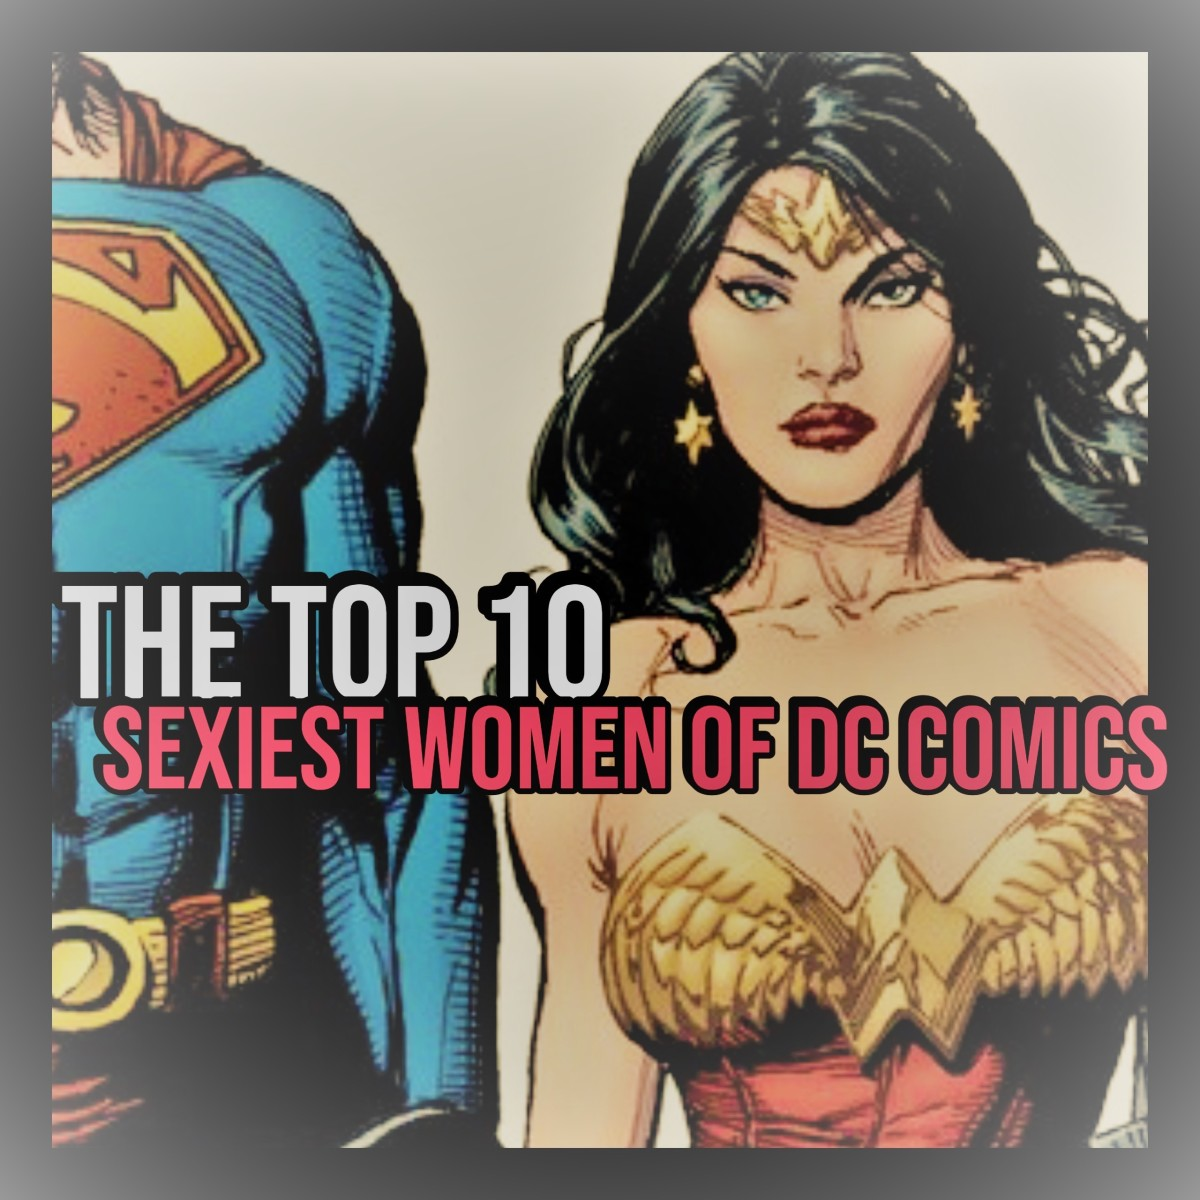 The Sexiest Women of DC Comics.